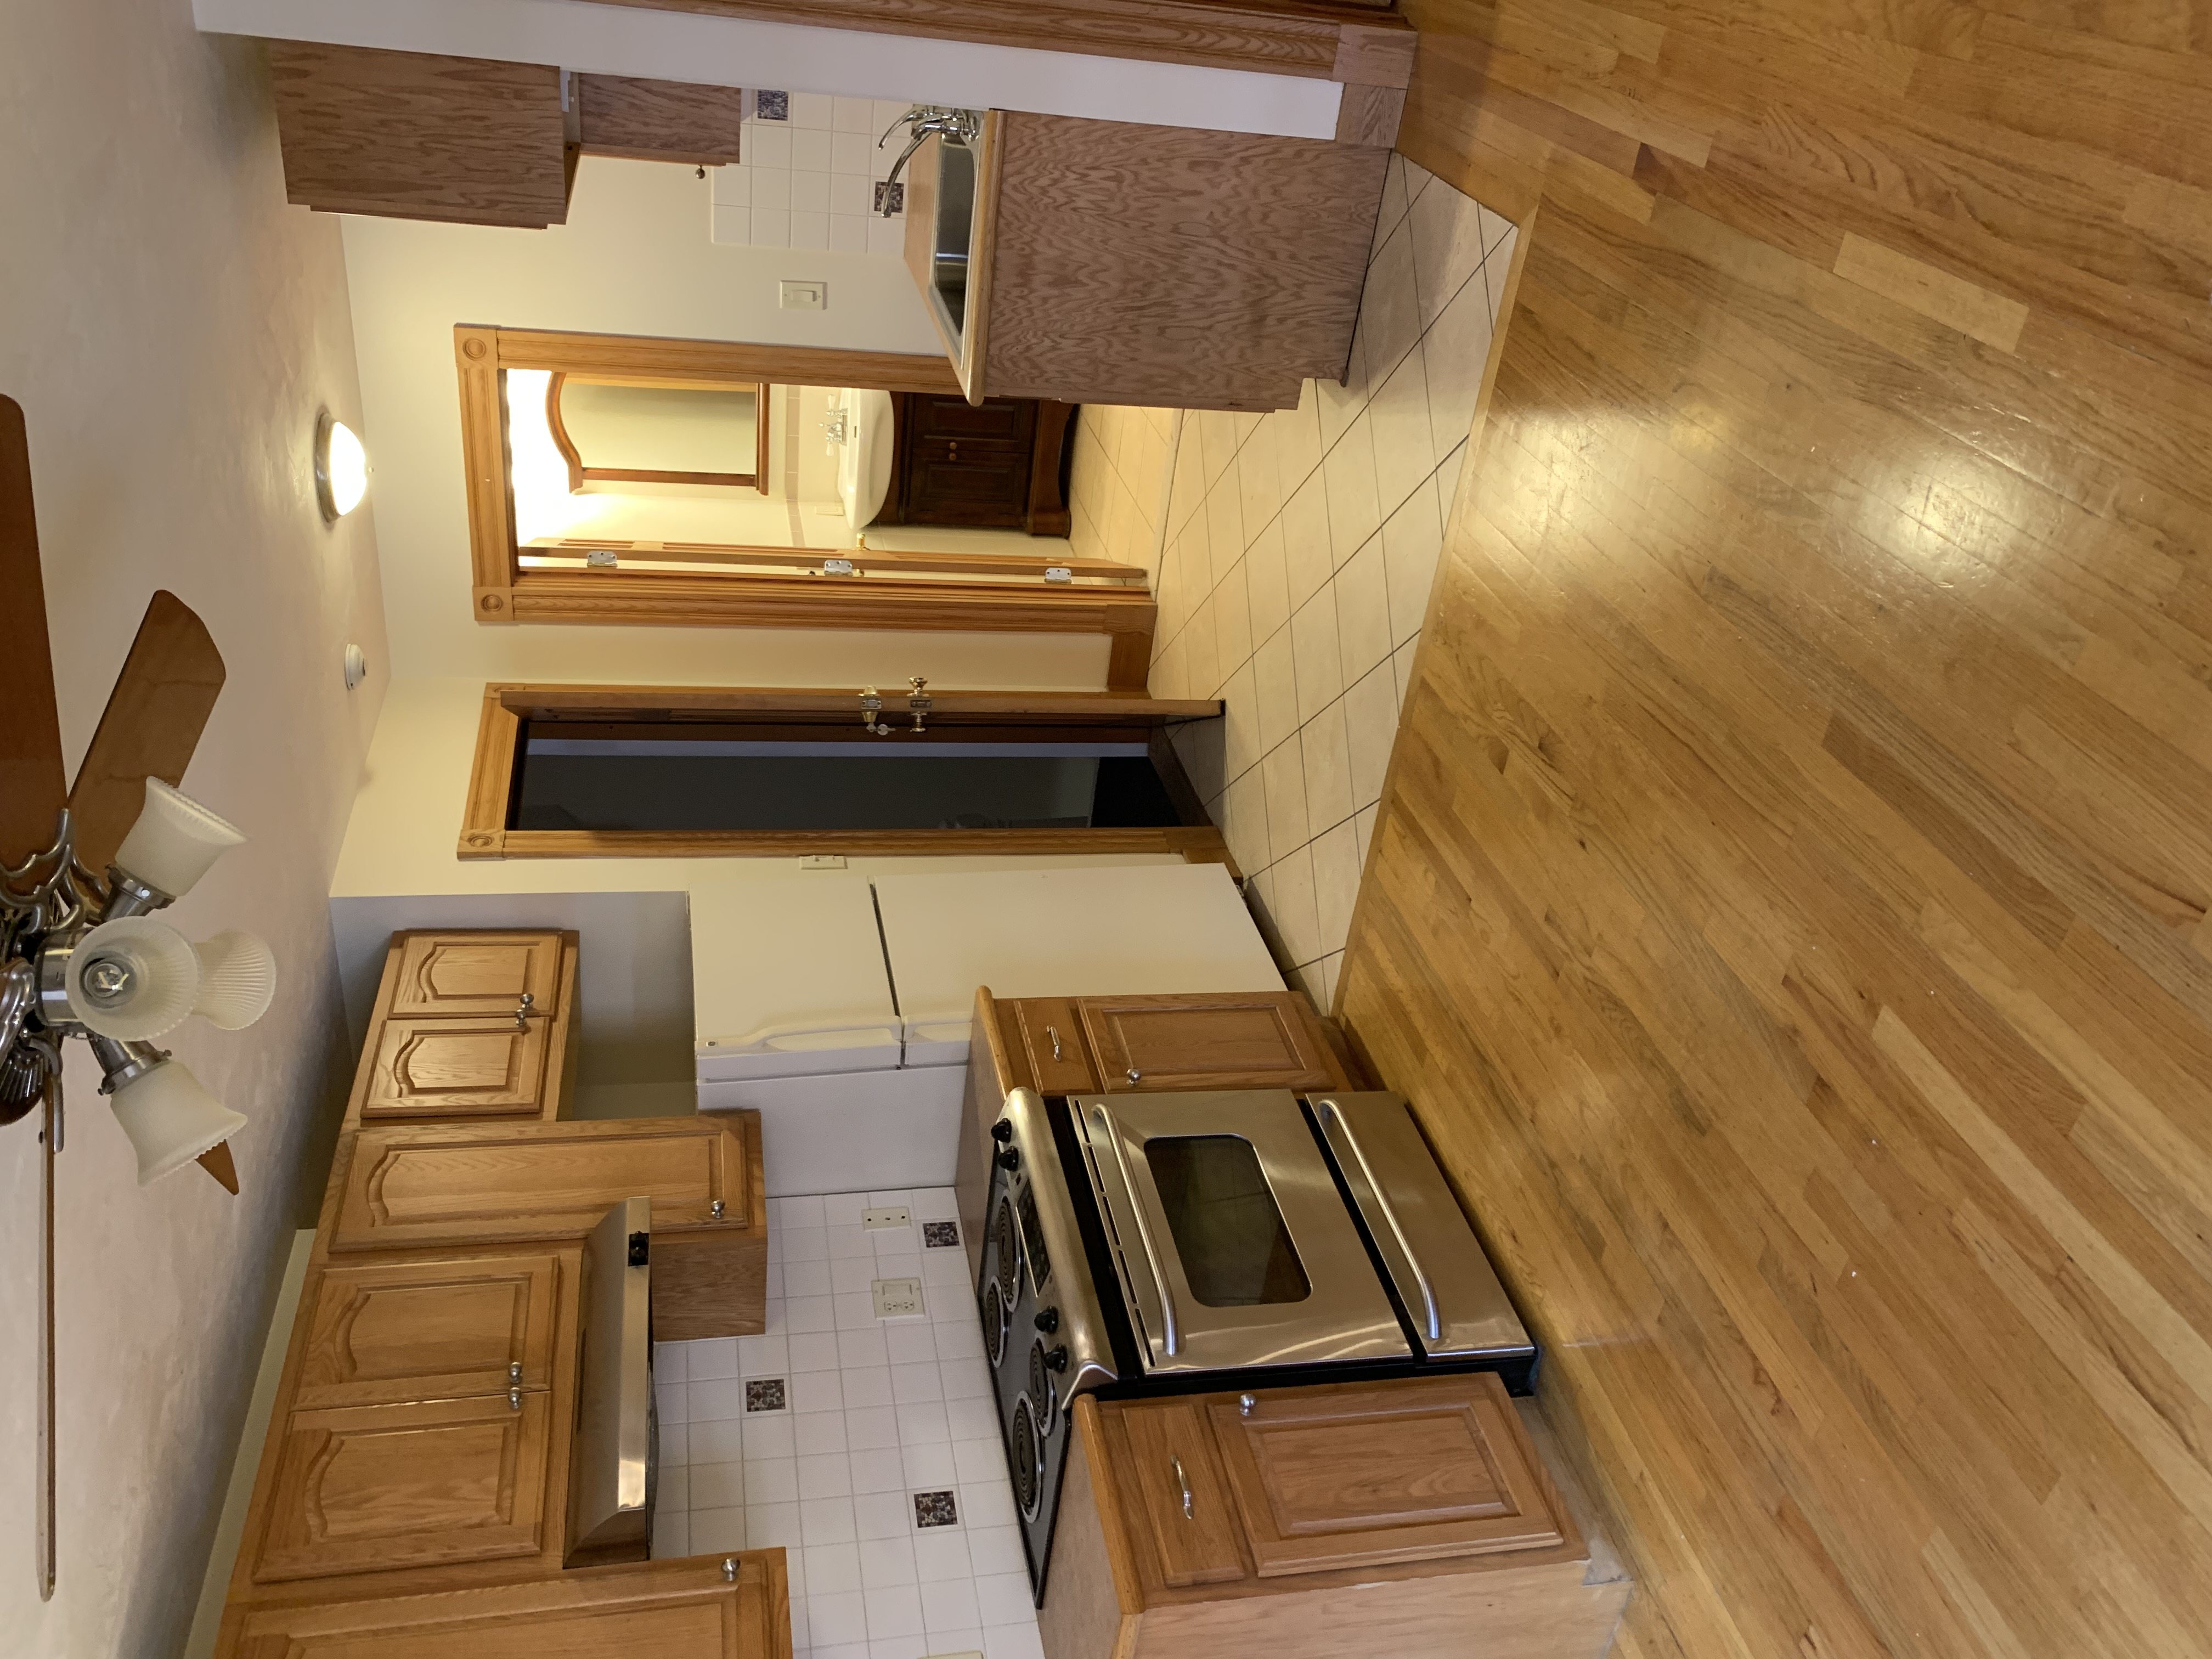 (RENTED) Anderson St 2 Bedroom Apartment! Beacon Hill!